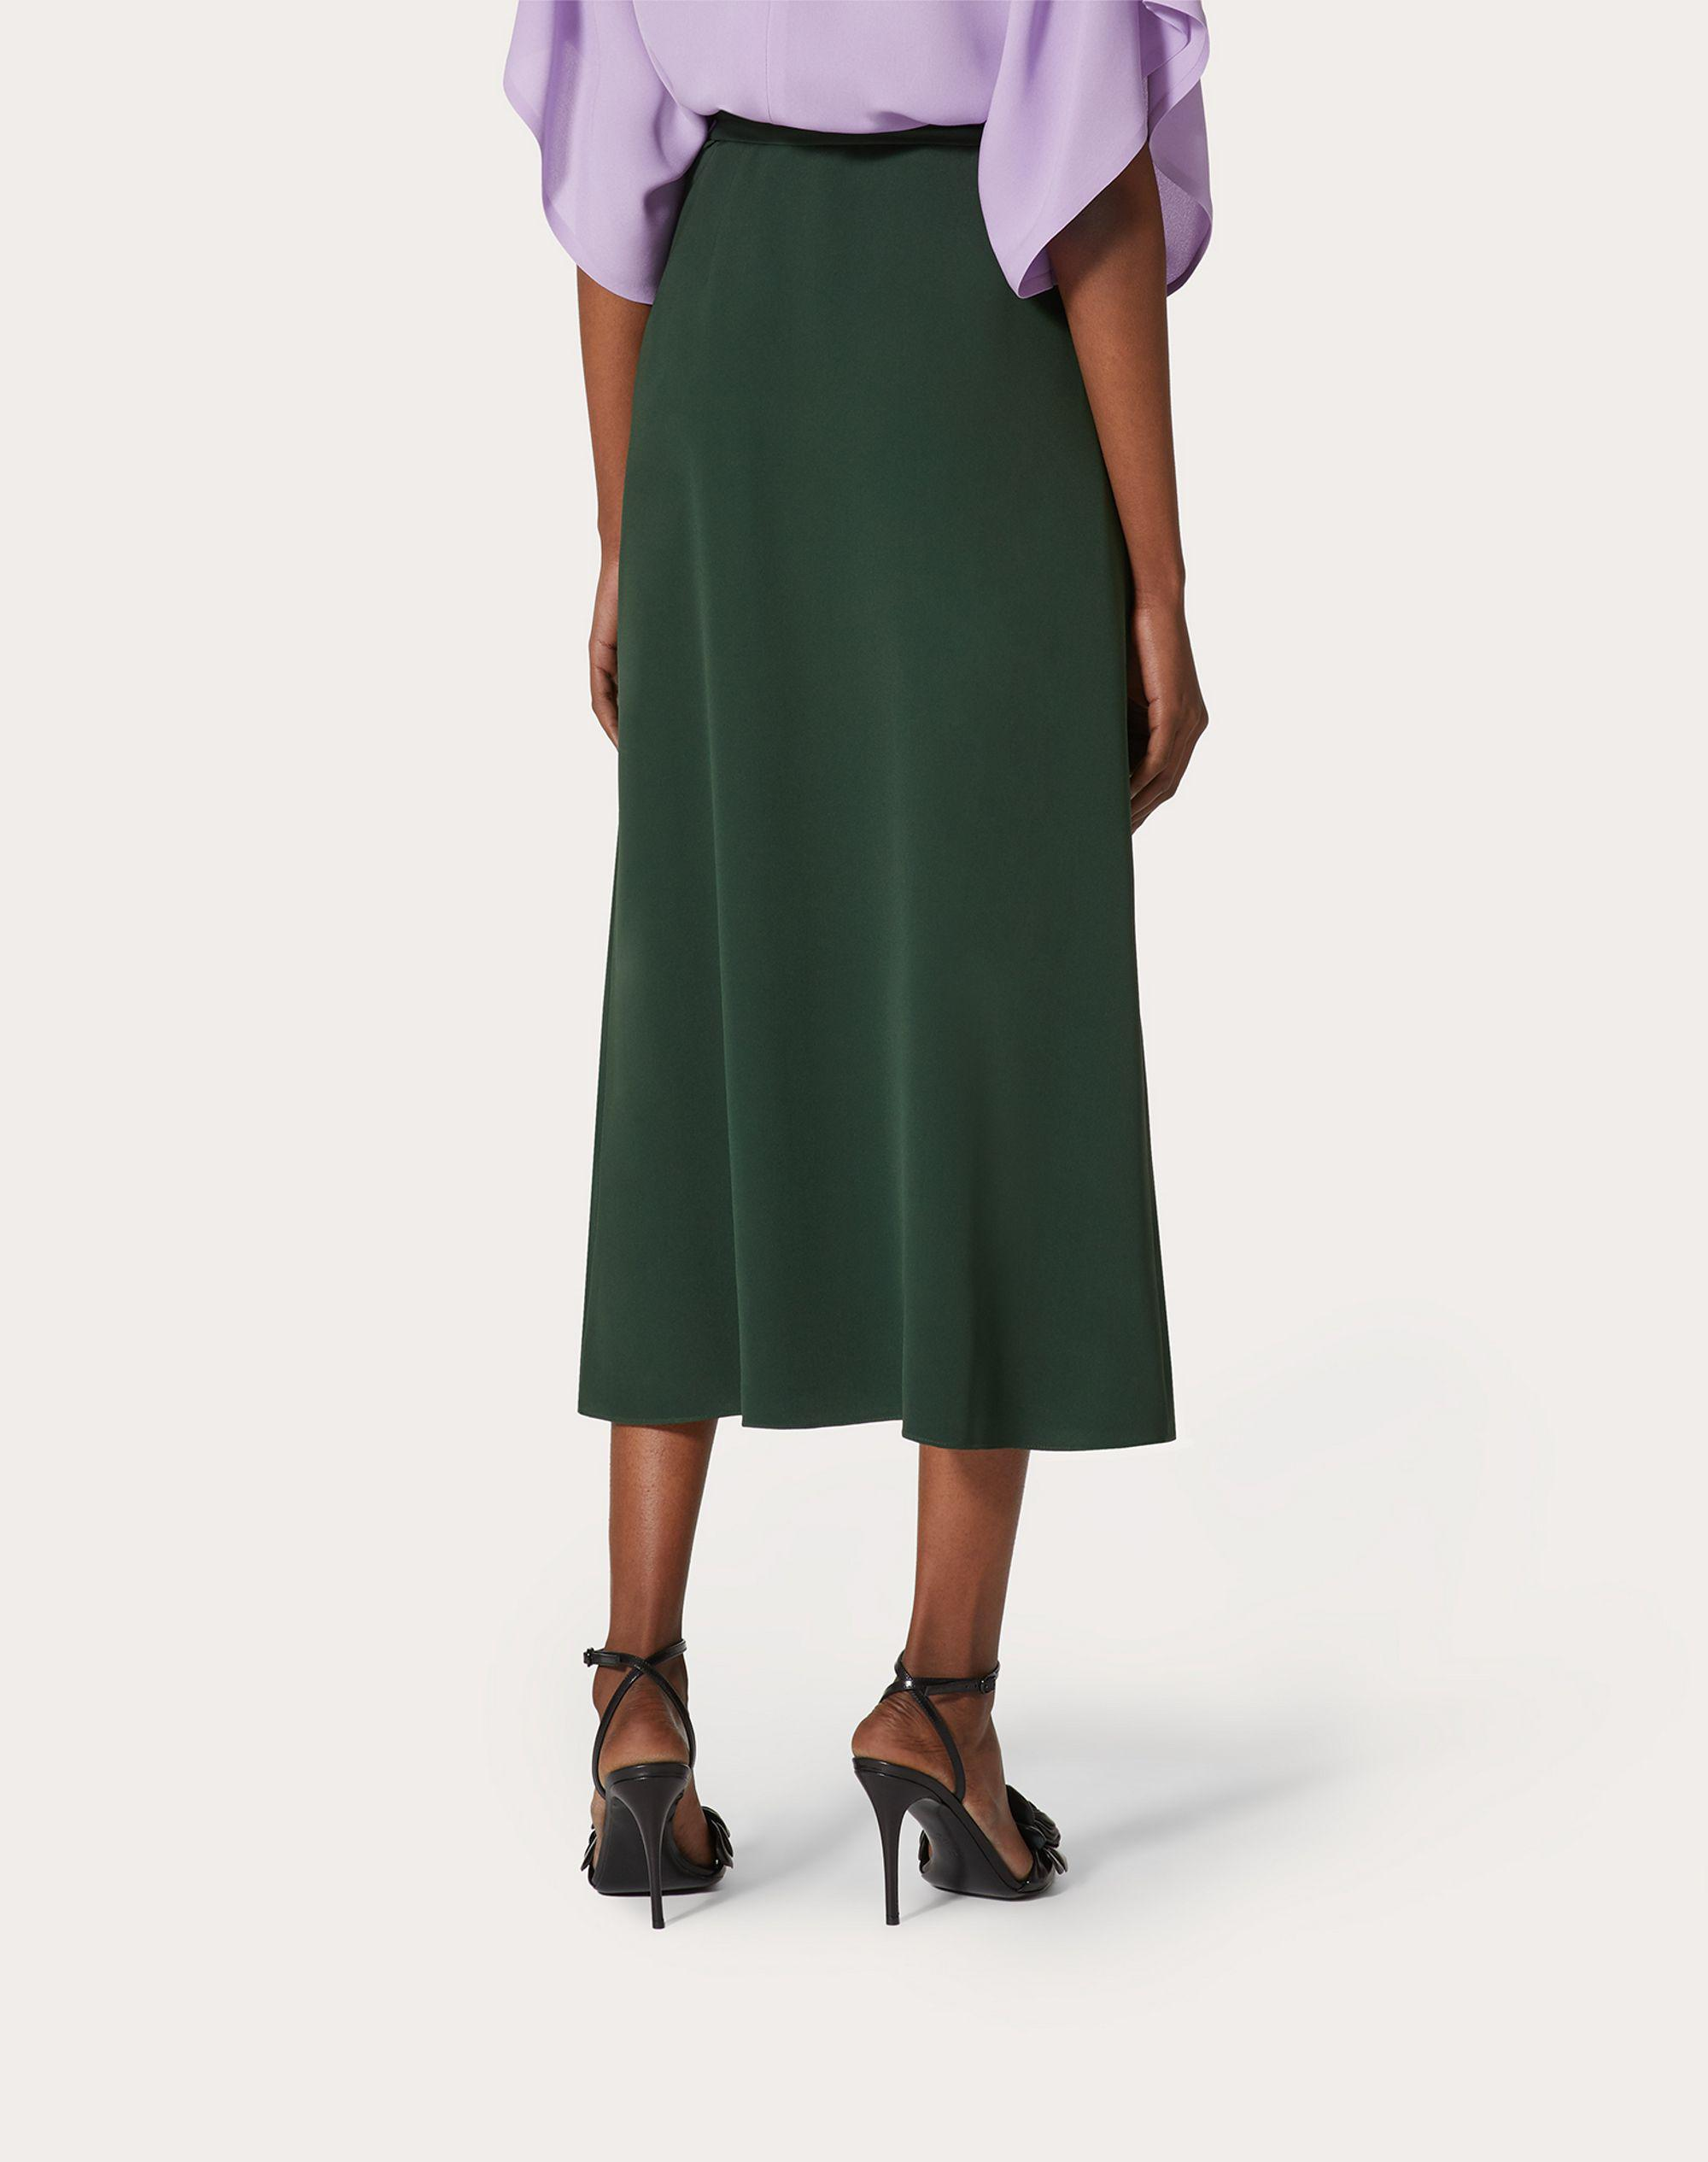 CADY COUTURE WRAP SKIRT 2